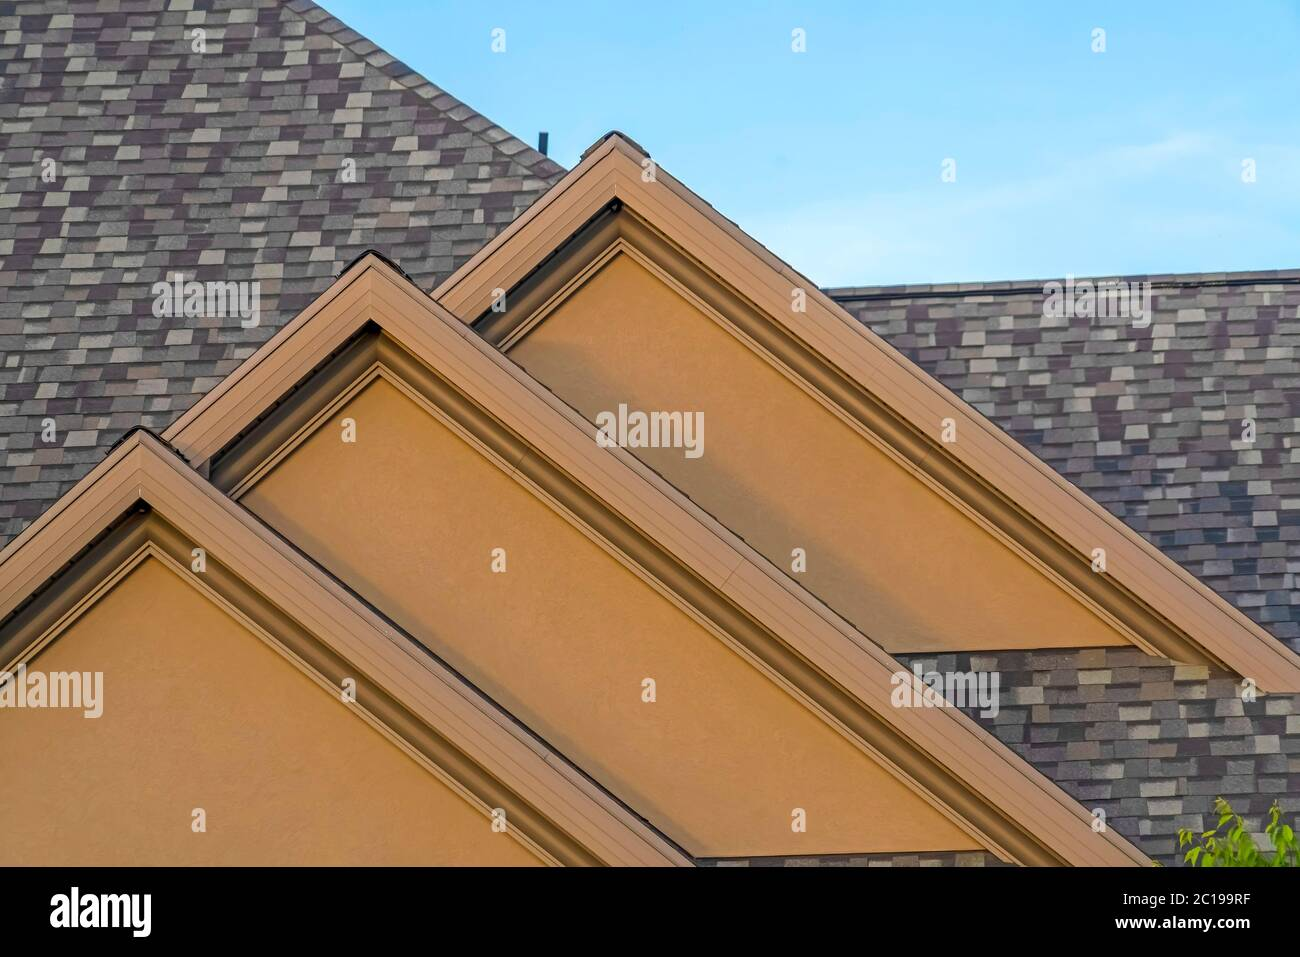 House Exterior With Front Gable Roof Design Against Blue Sky Background Stock Photo Alamy